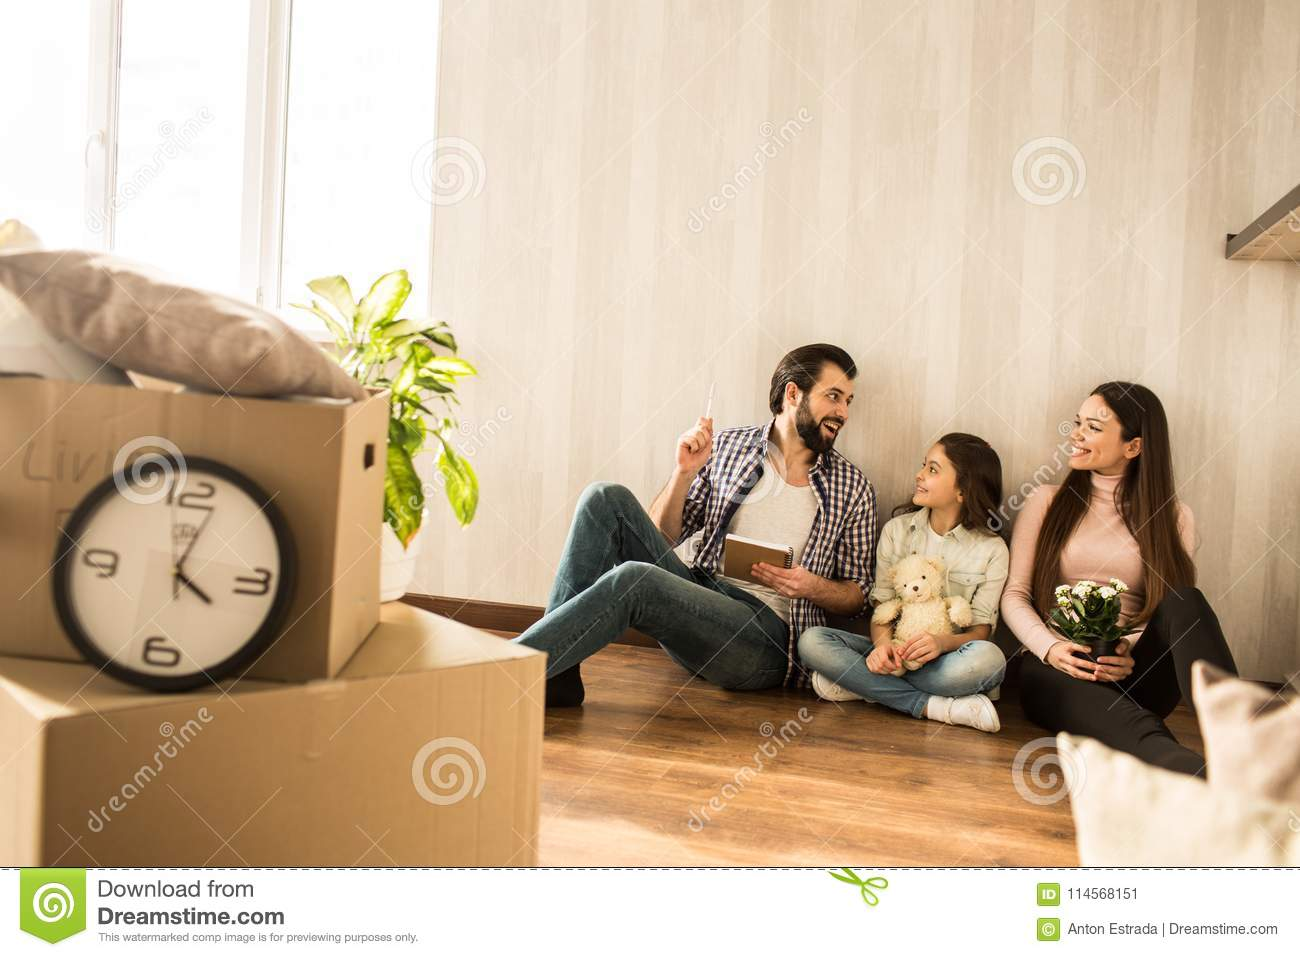 Young family is sitting together on the floor in the living room. They have just moving into this apartment. Girls are